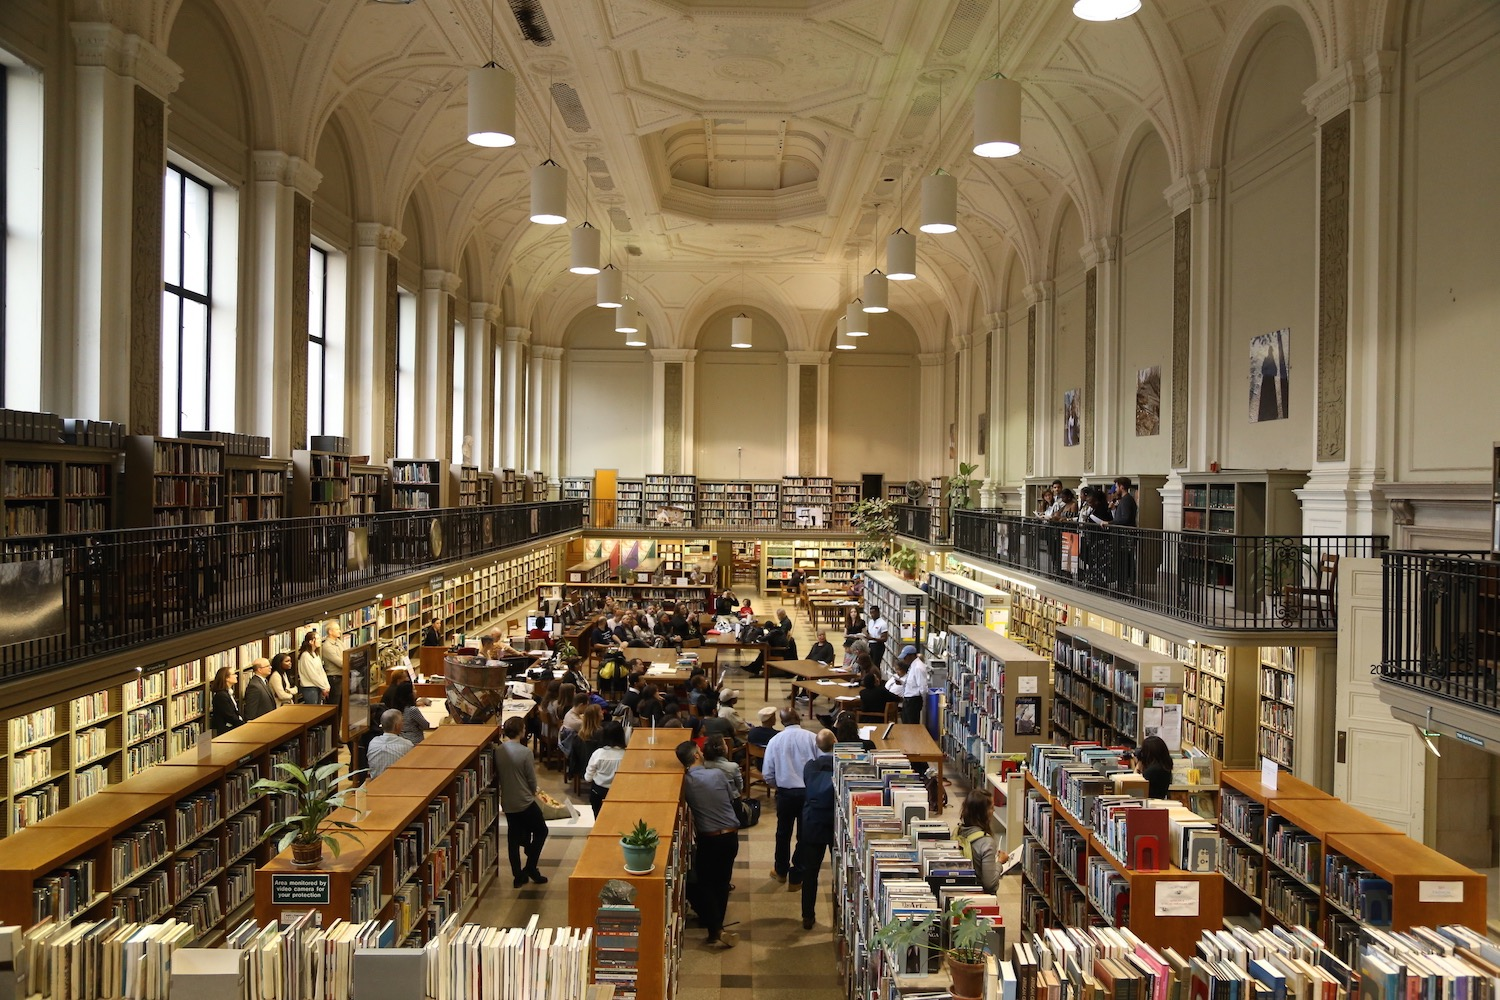 TRIPOD: Conversations with Place Reading + Exhibition Opening in the Art & Literature Department at the Free Library of Philadelphia, May 2019.